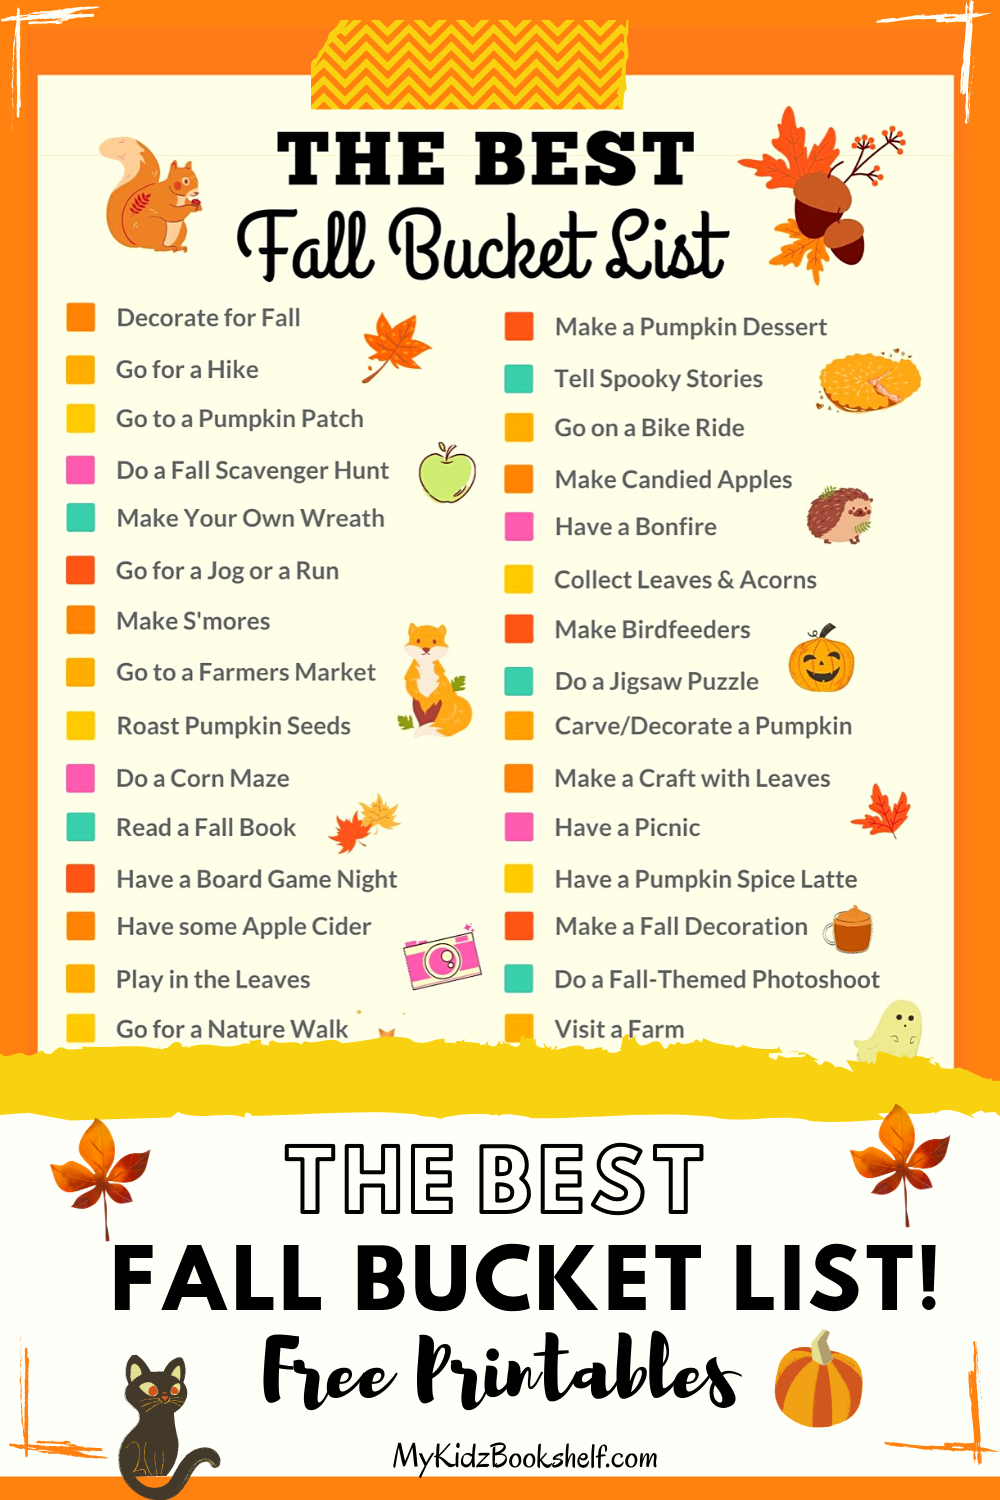 Fall bucket list free printables